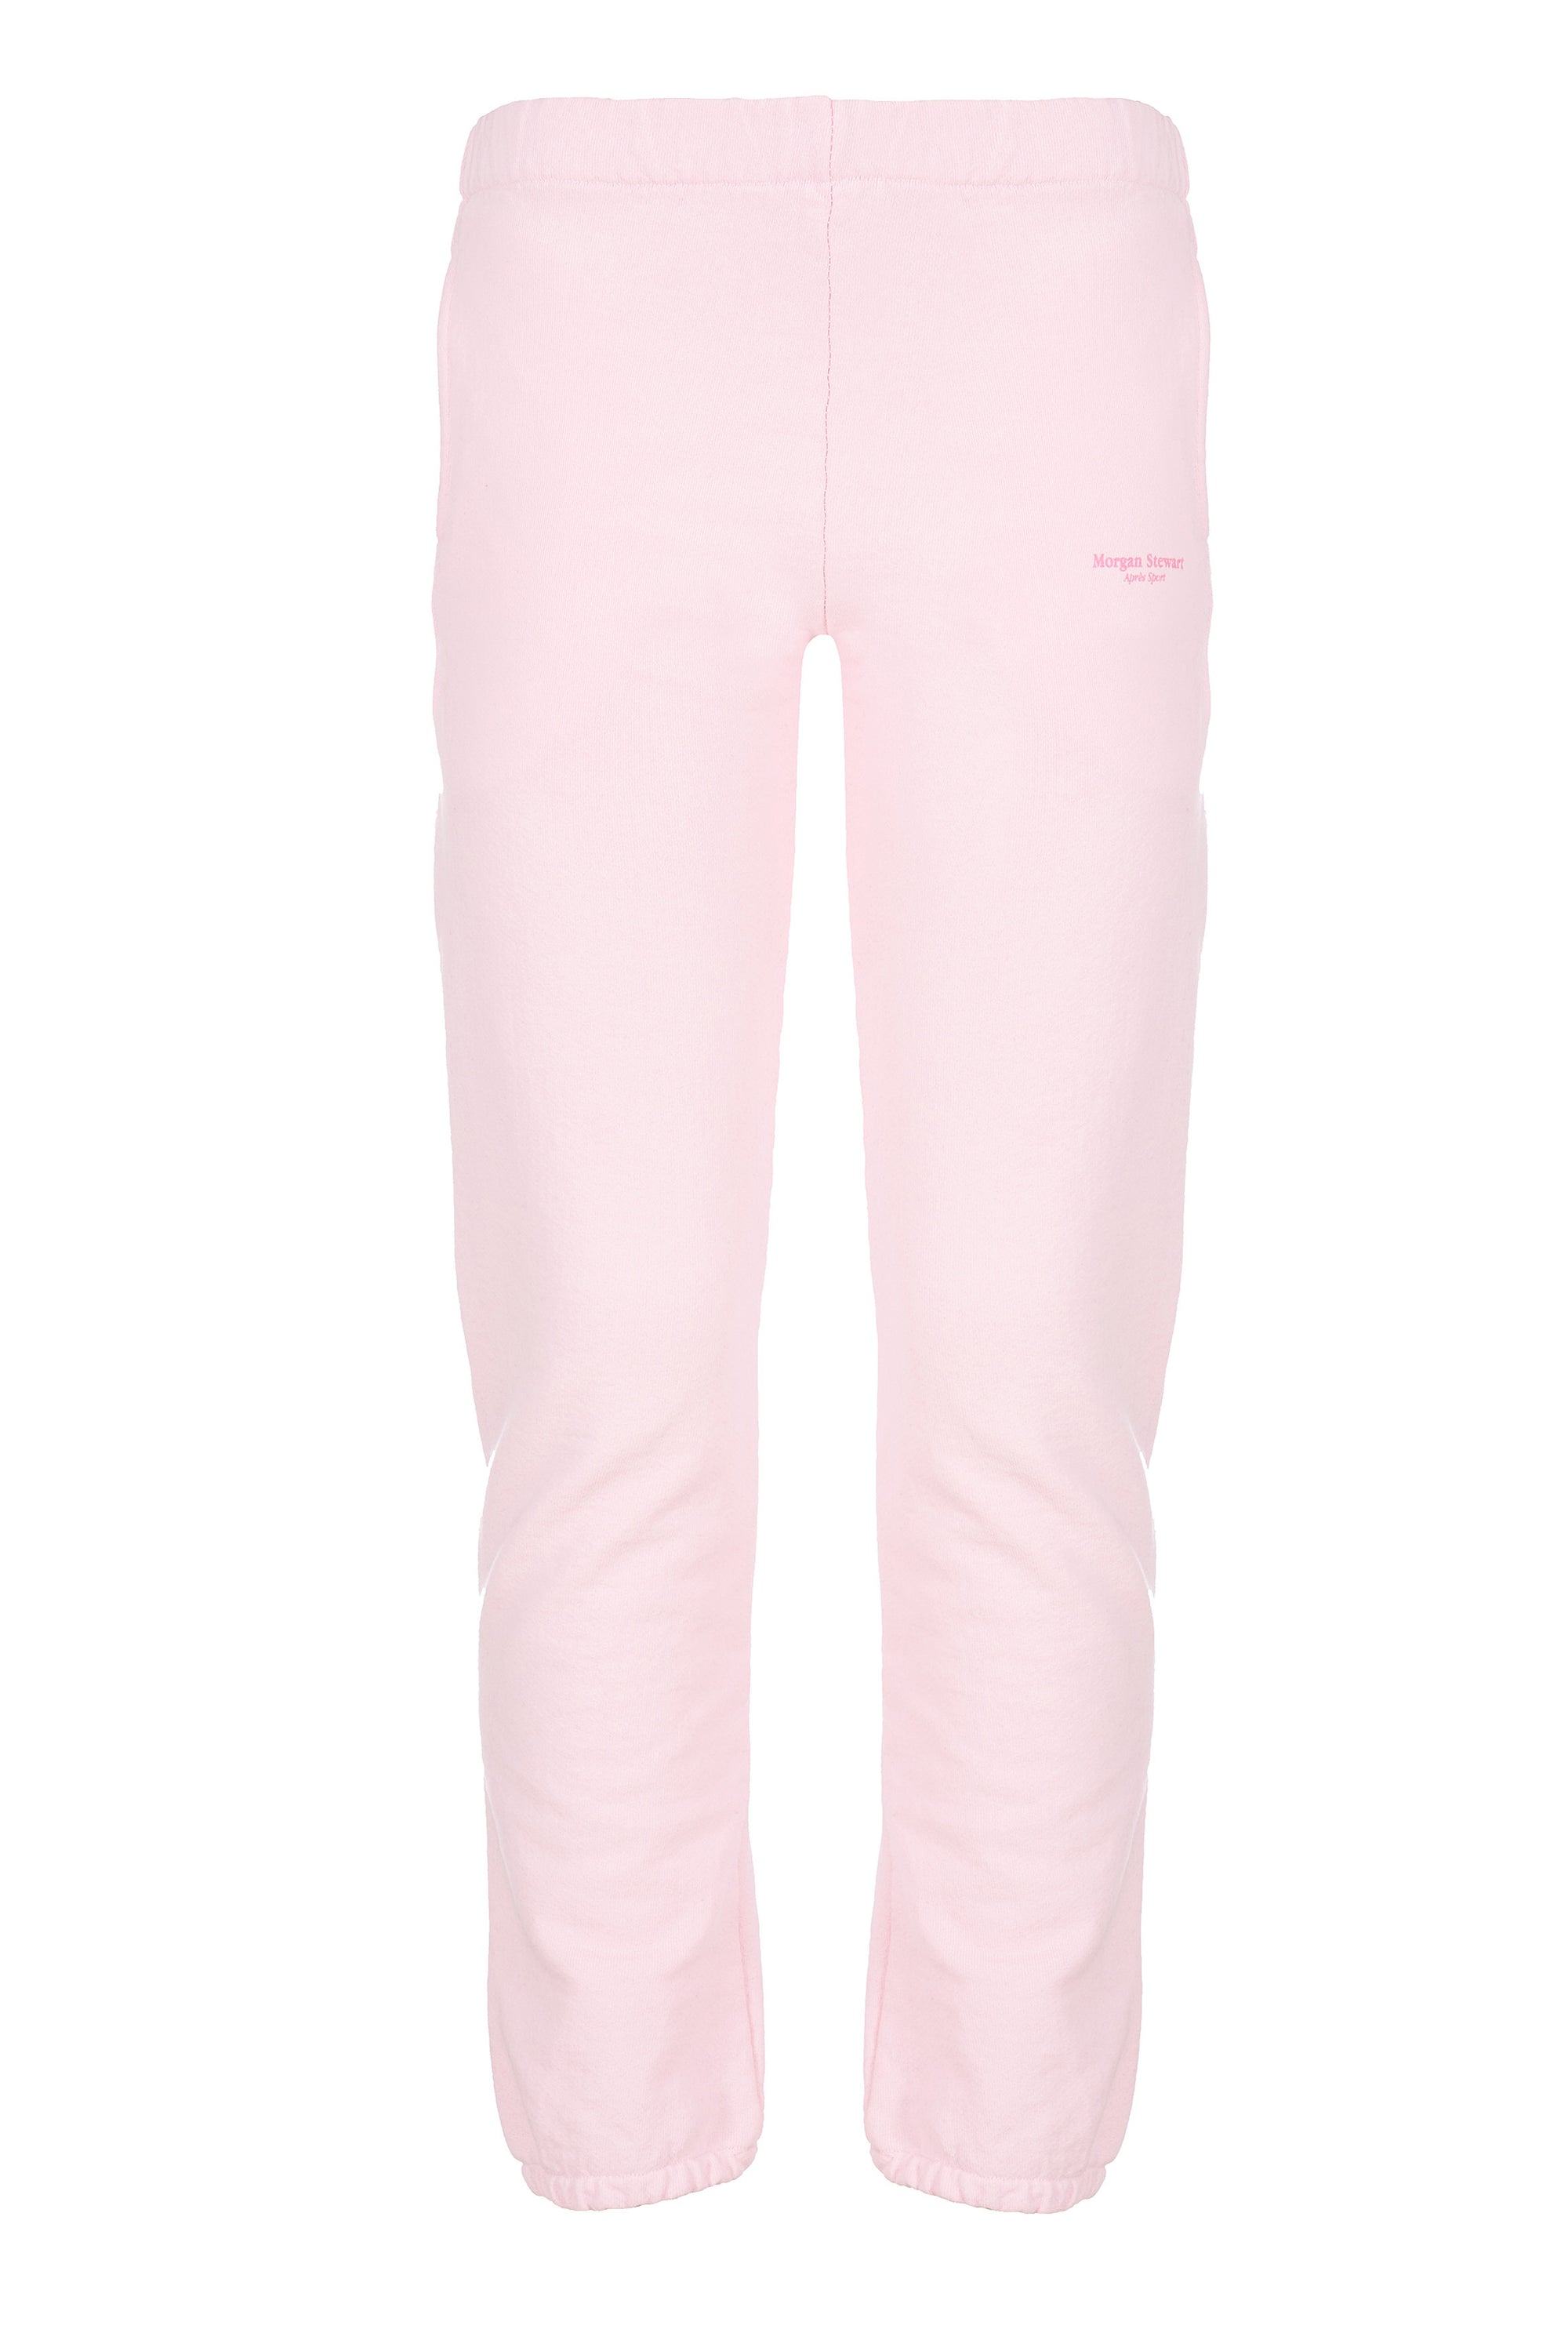 Bubblegum Sweatsuit Kit